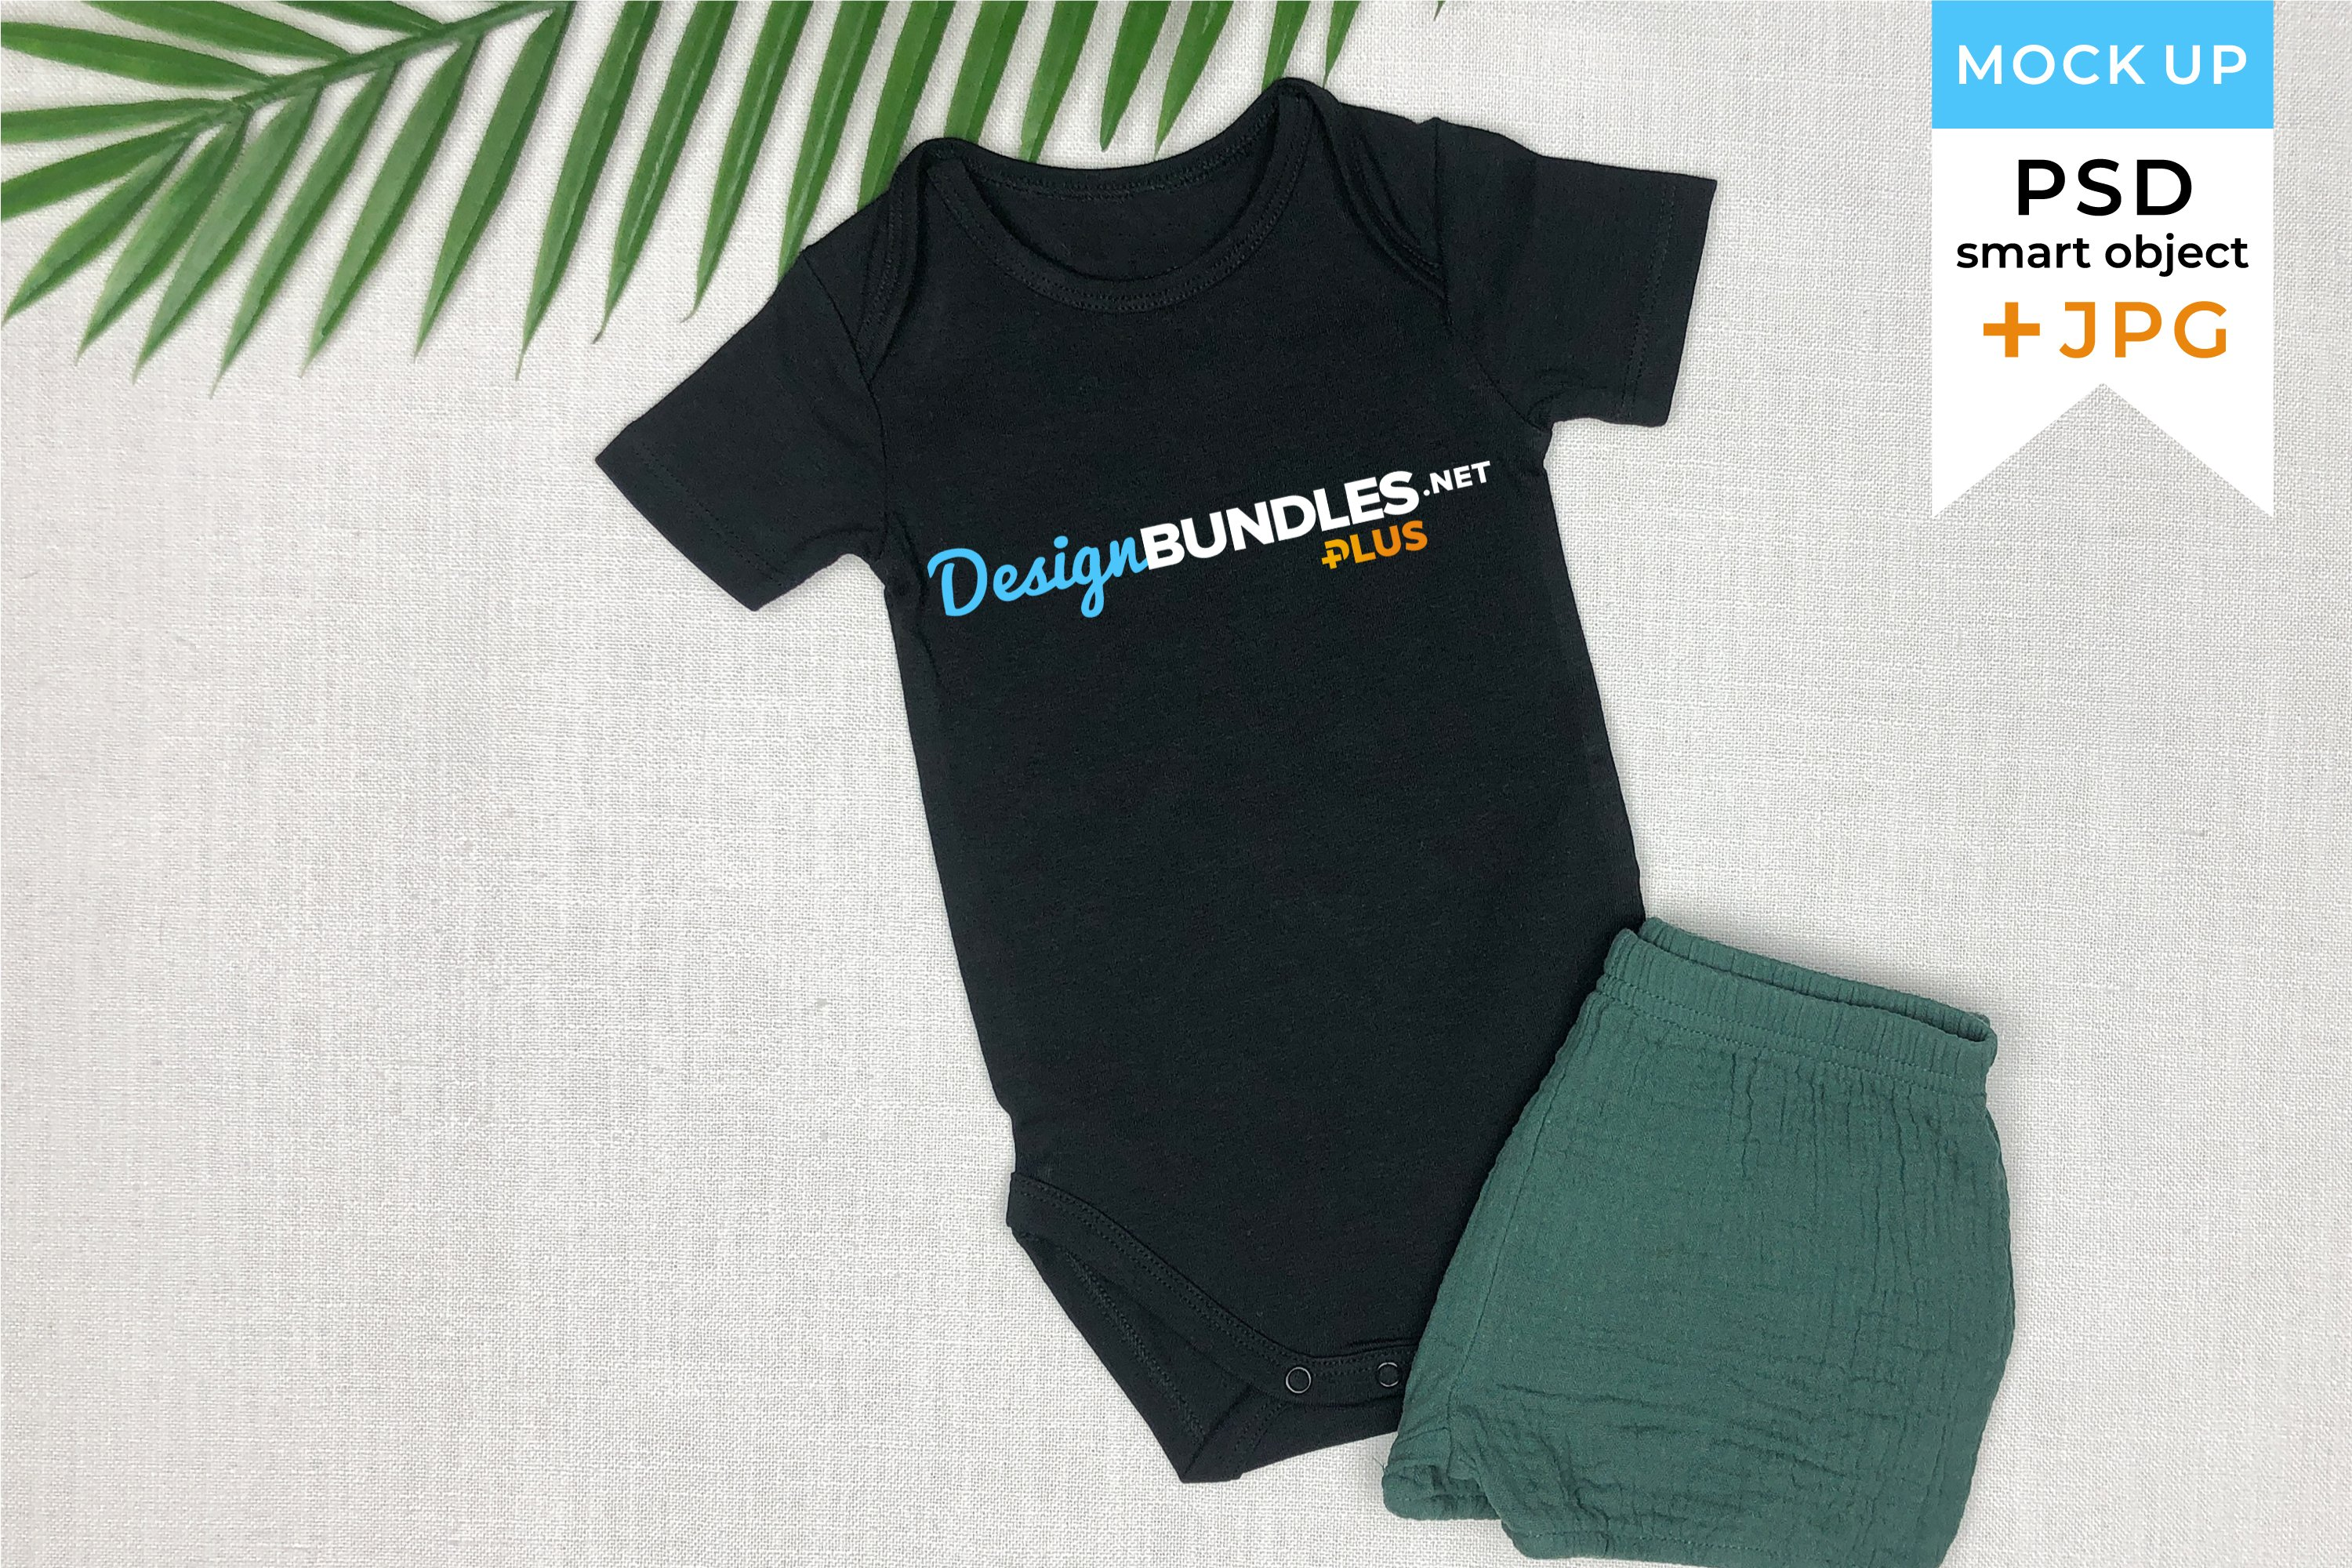 Mockup baby bodysuit JPG and PSD smart object | Baby clothes example image 1